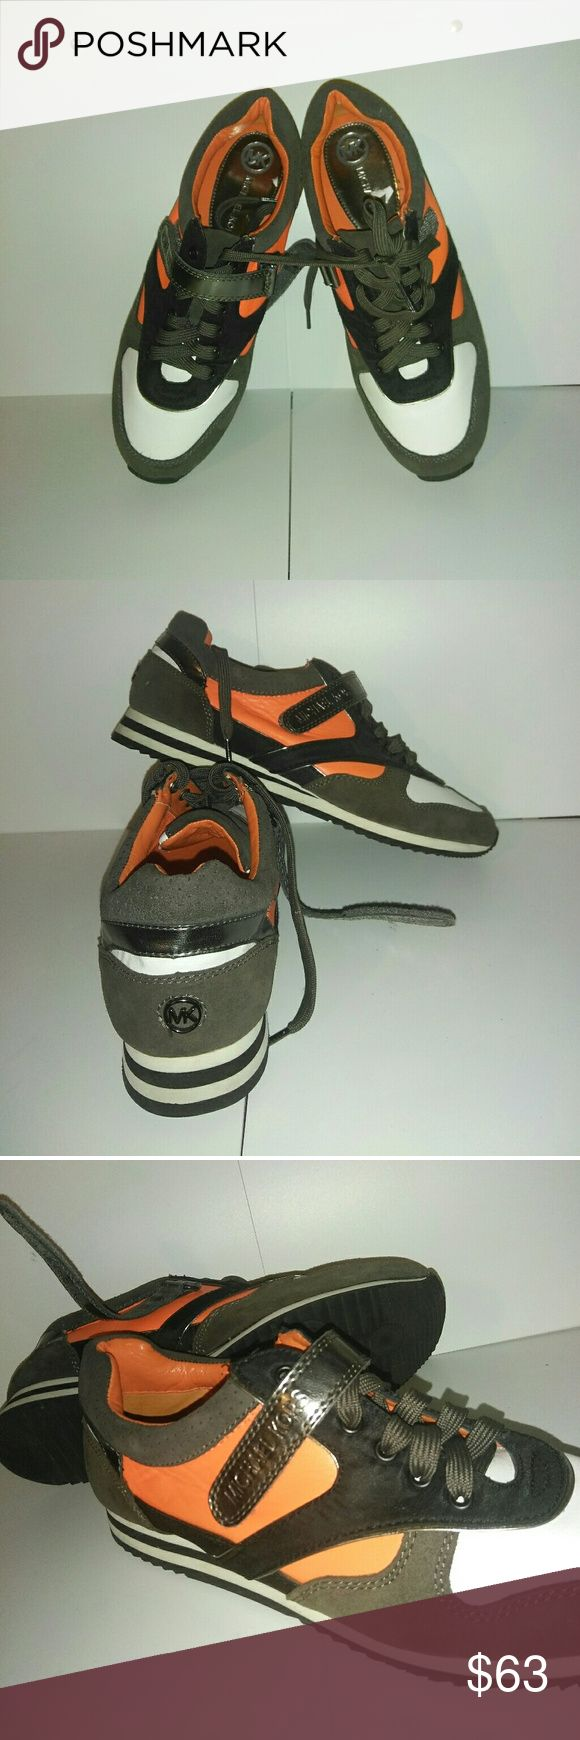 Micheal Kors women sneaker Pre-owned to new,  worn 1 time out of box. Do not have box. Authentic Michael Kors women sneaker. MK Allie trainer sneaker. Color,  orange,  black,  white,  grey. micheal kors Shoes Athletic Shoes